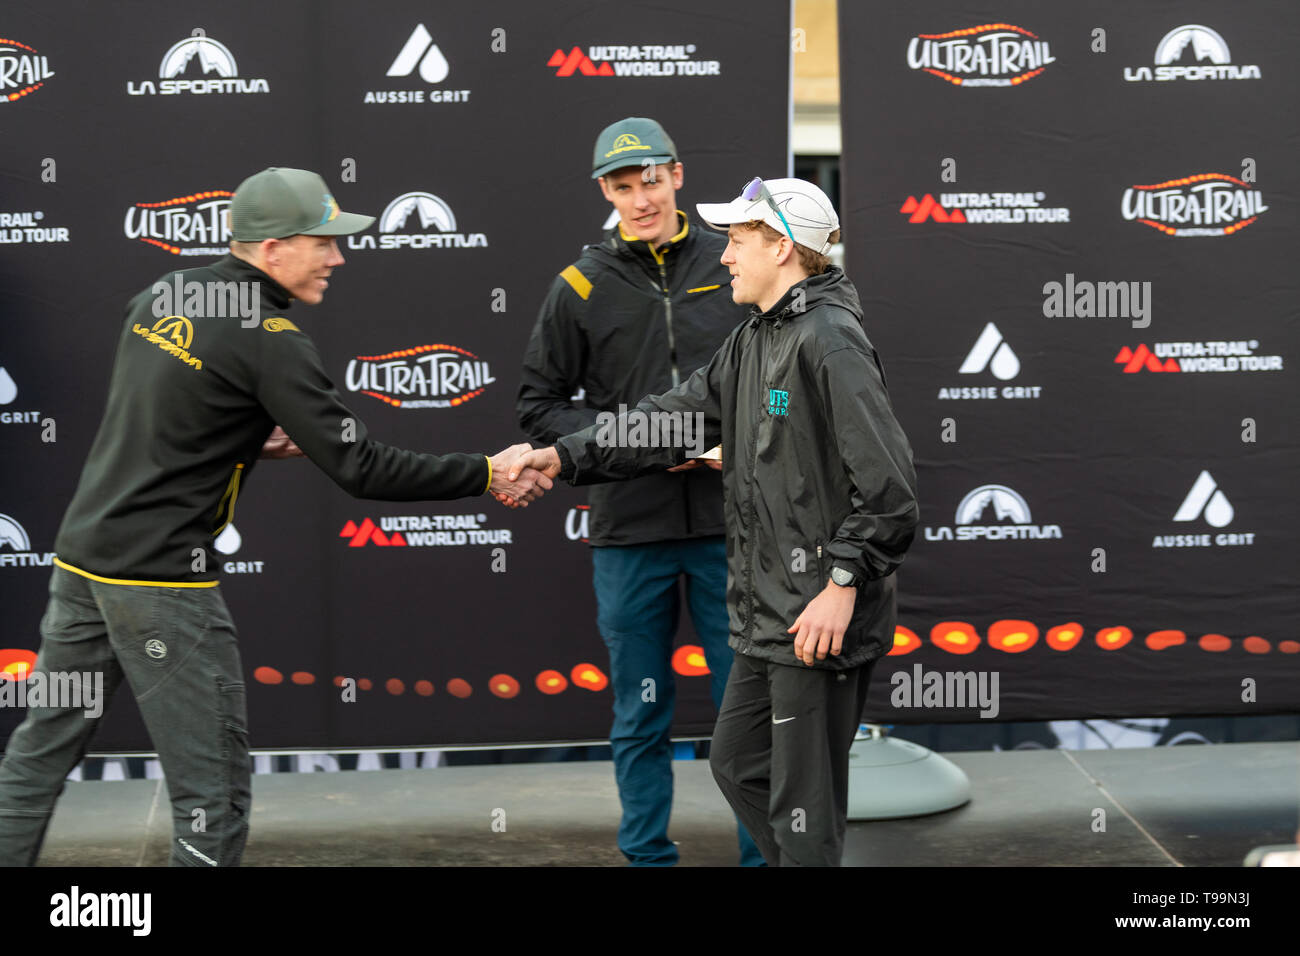 Blue Mountains, Australia - April 16 2019: Ultra-Trail Australia UTA11 race. WIll Atkinson, over all race runner up (2nd place) shakes hand with spons - Stock Image